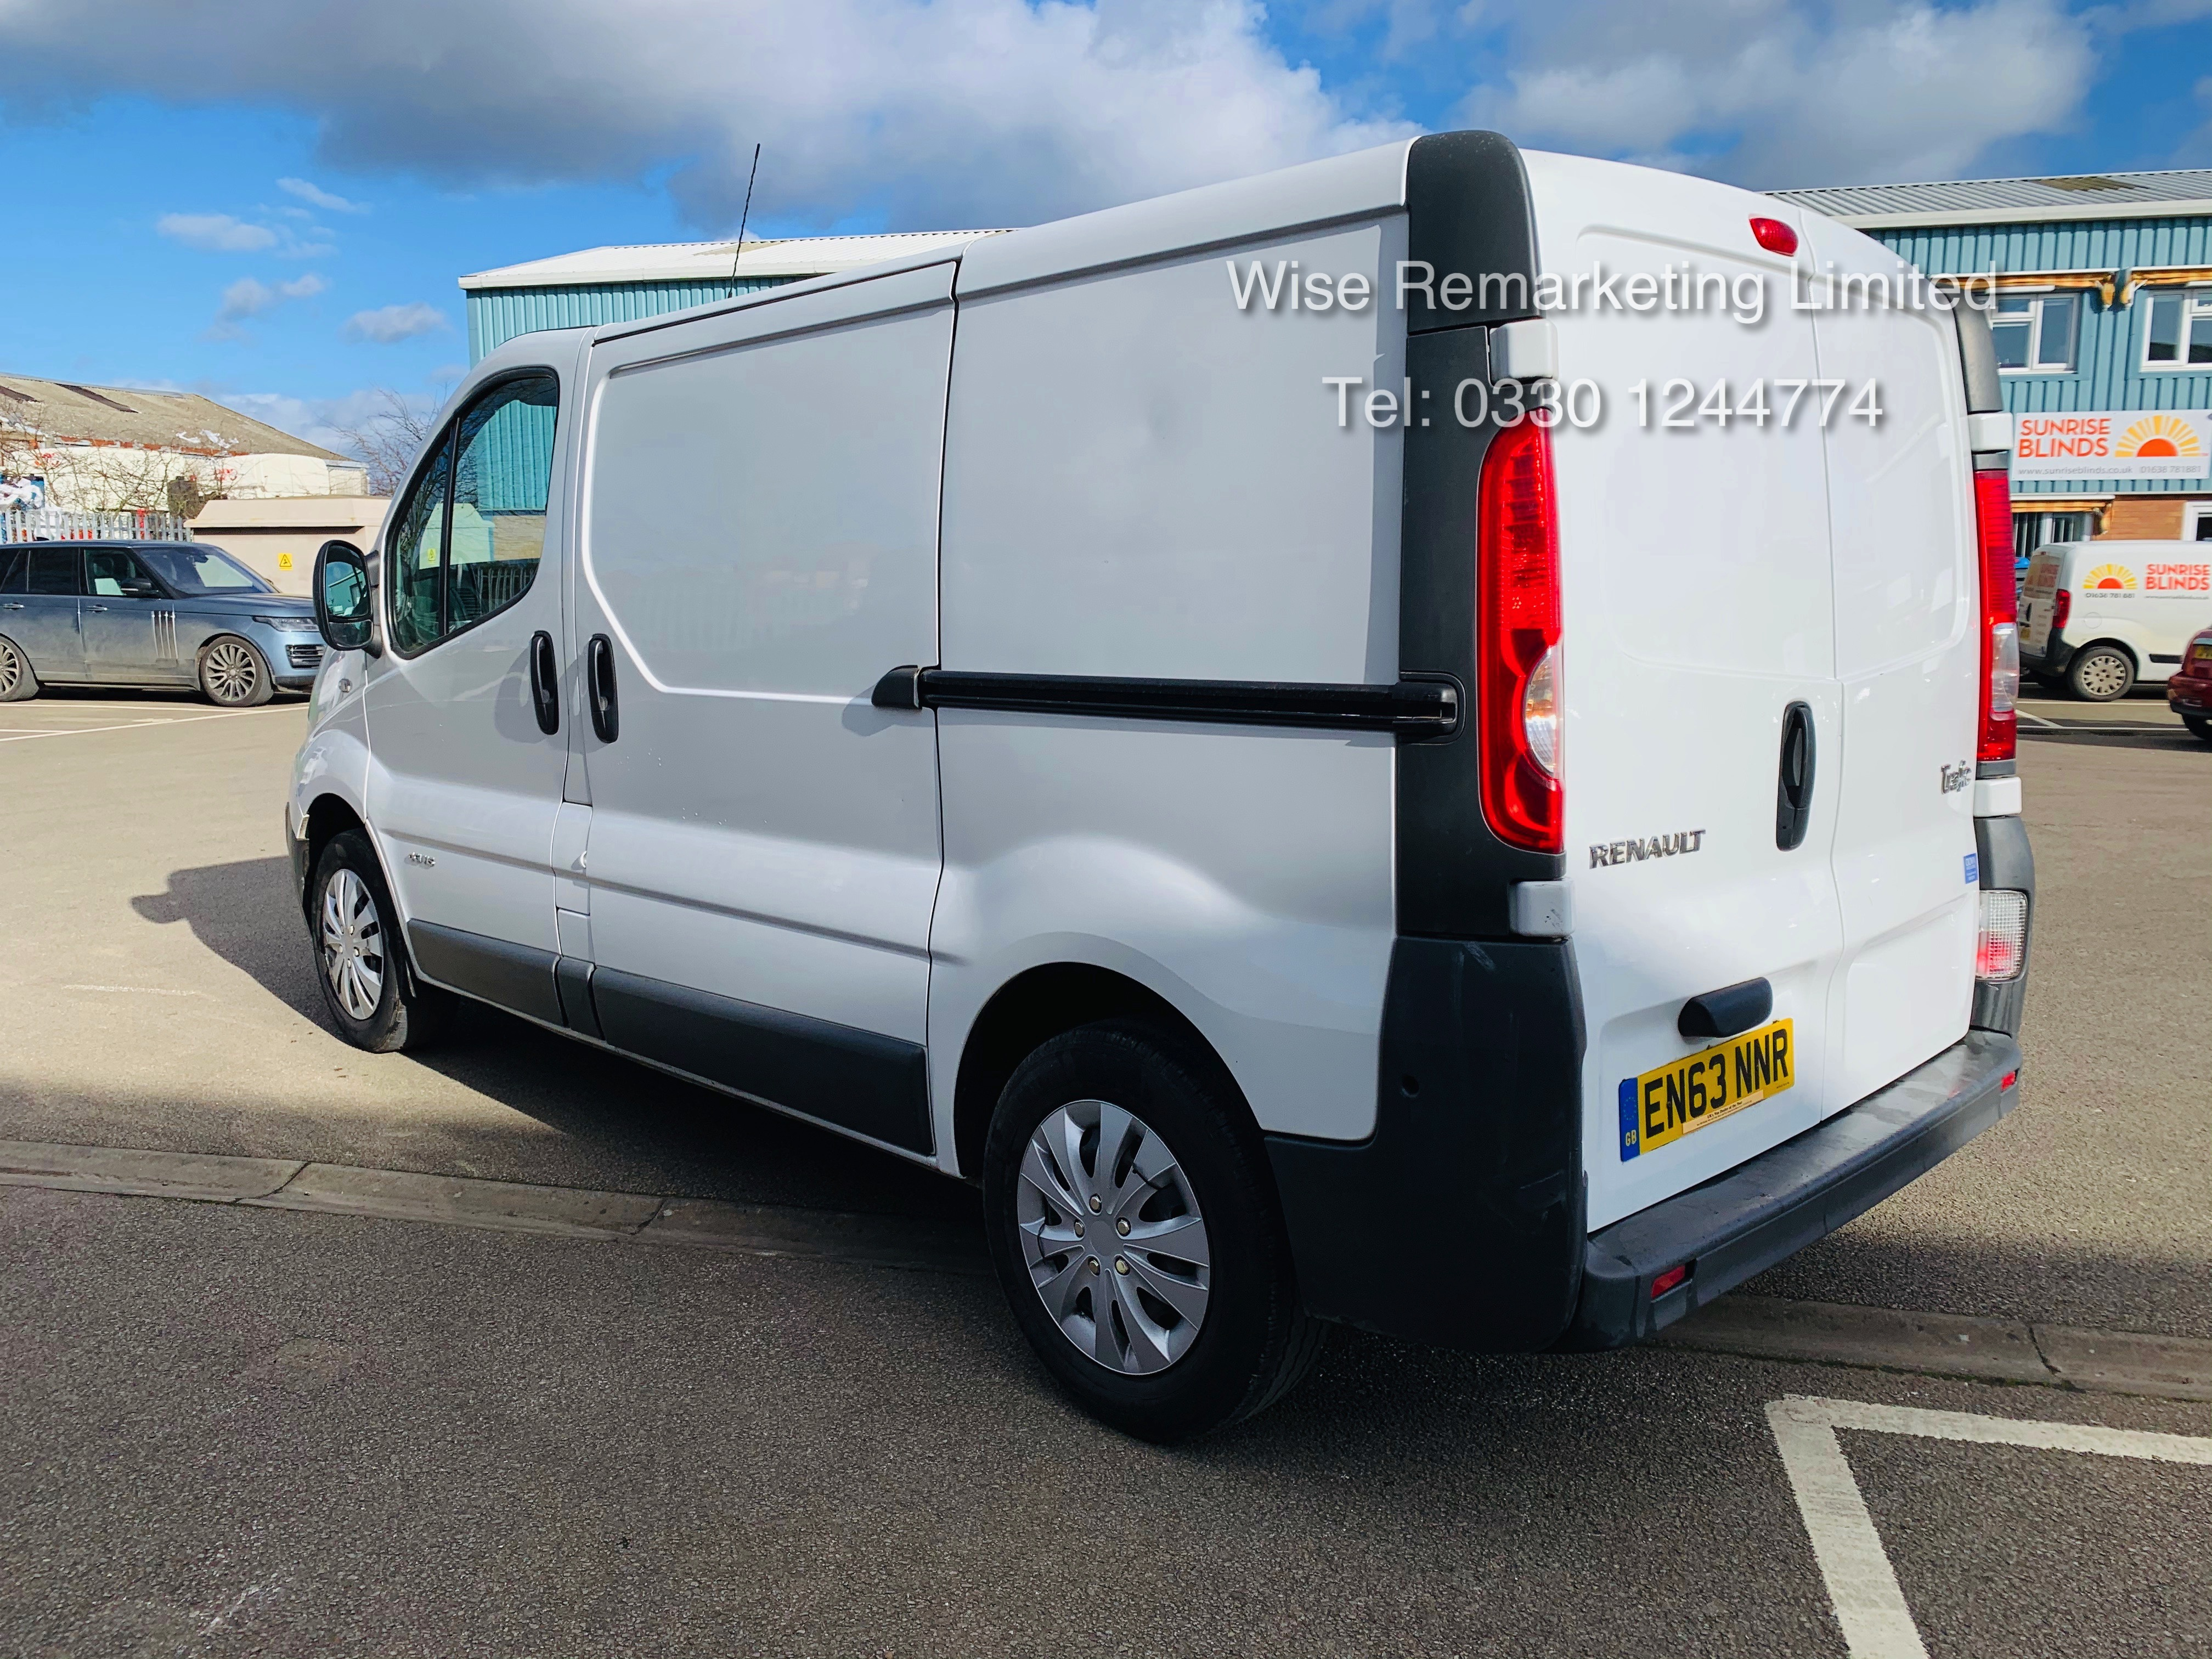 Renault Trafic 2.0 DCI (115 BHP) - 6 Speed - 2014 Reg - Ply Lined - - Image 5 of 21